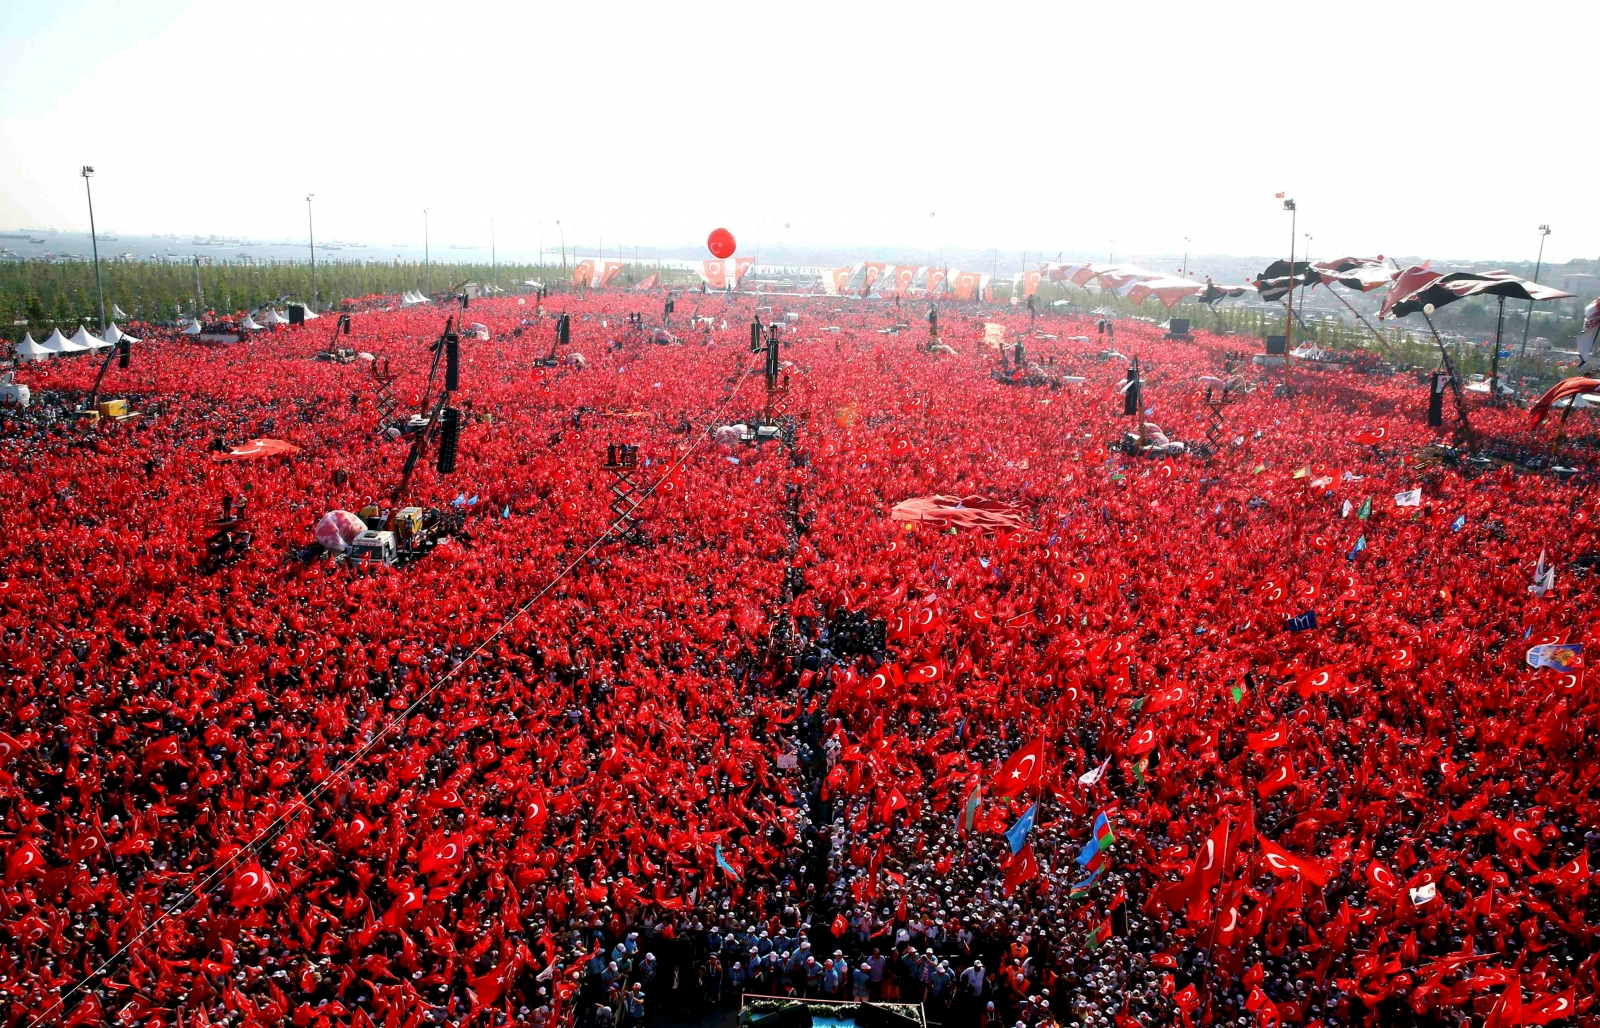 Turkey Democracy and Martyrs' rally